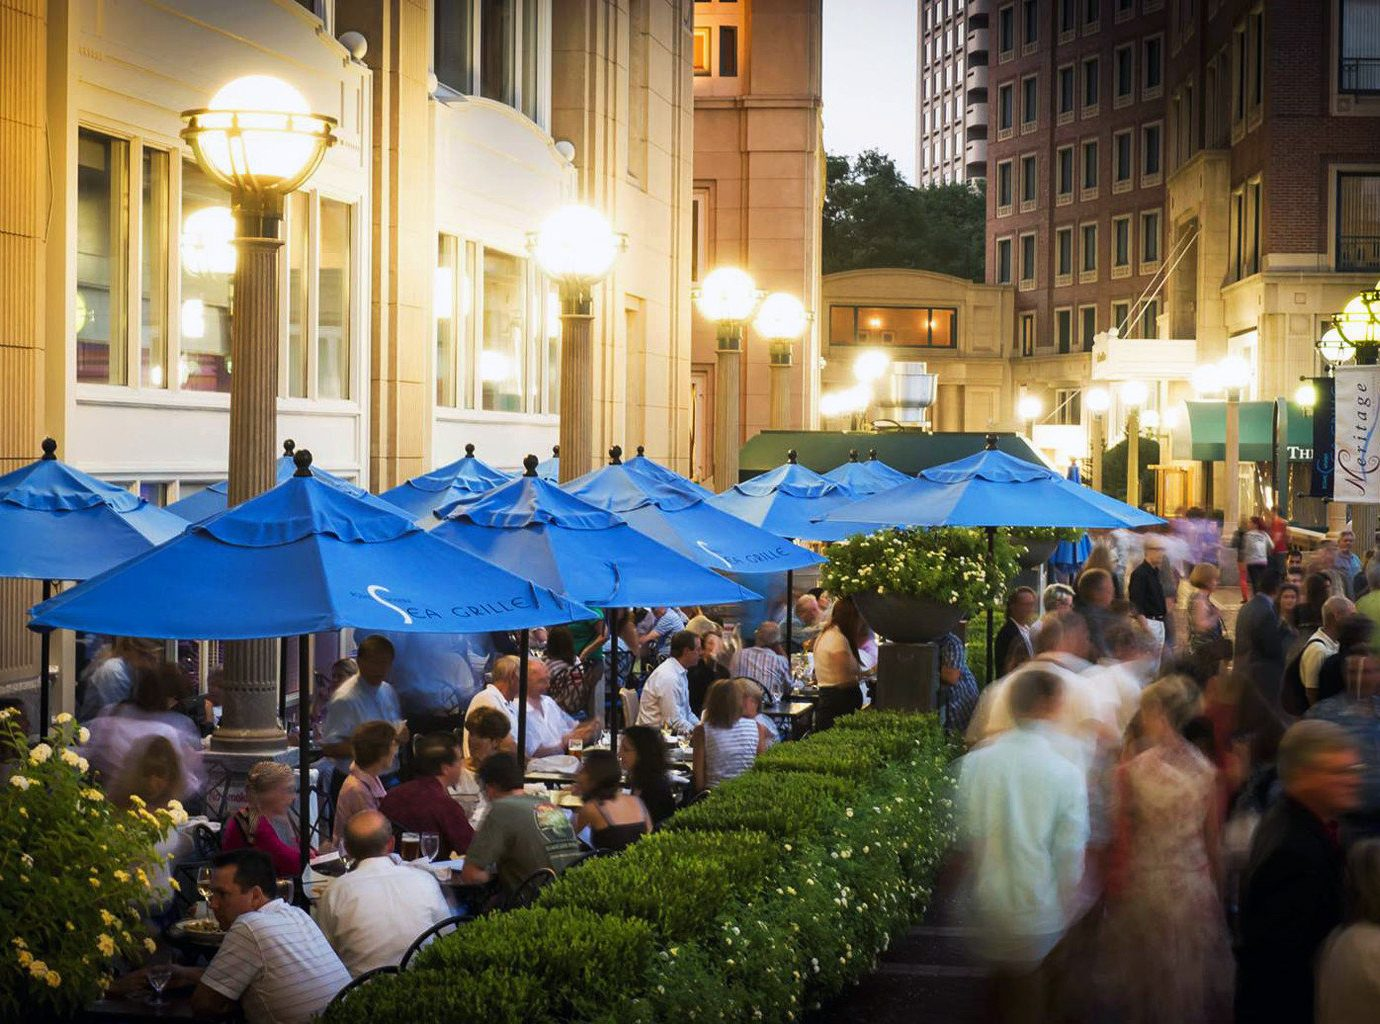 City Dining Drink Eat Hotels Nightlife Waterfront outdoor crowd public space people market